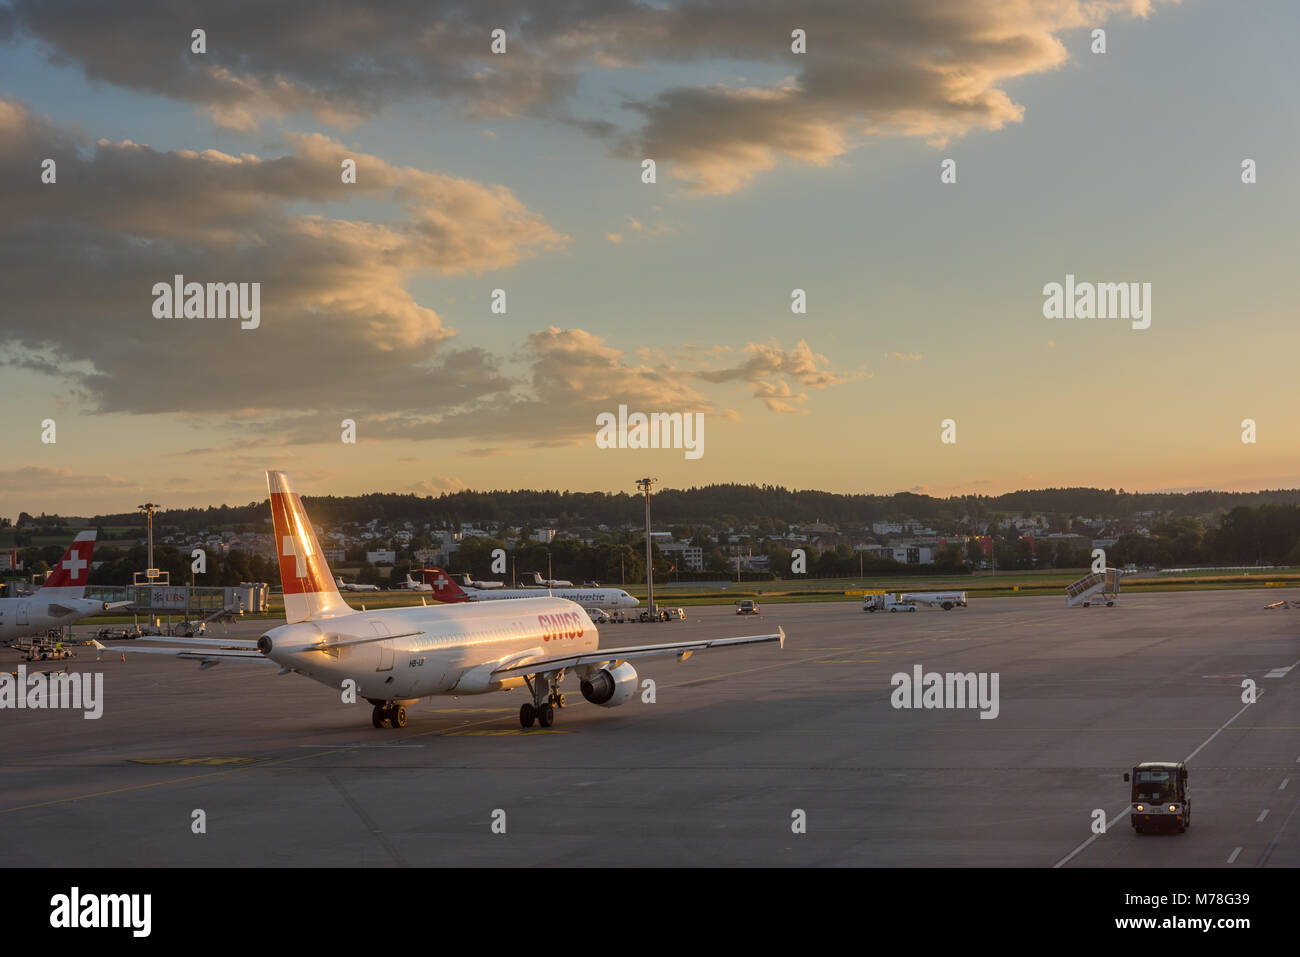 Aircraft departs at Zurich airport at sunset - Stock Image